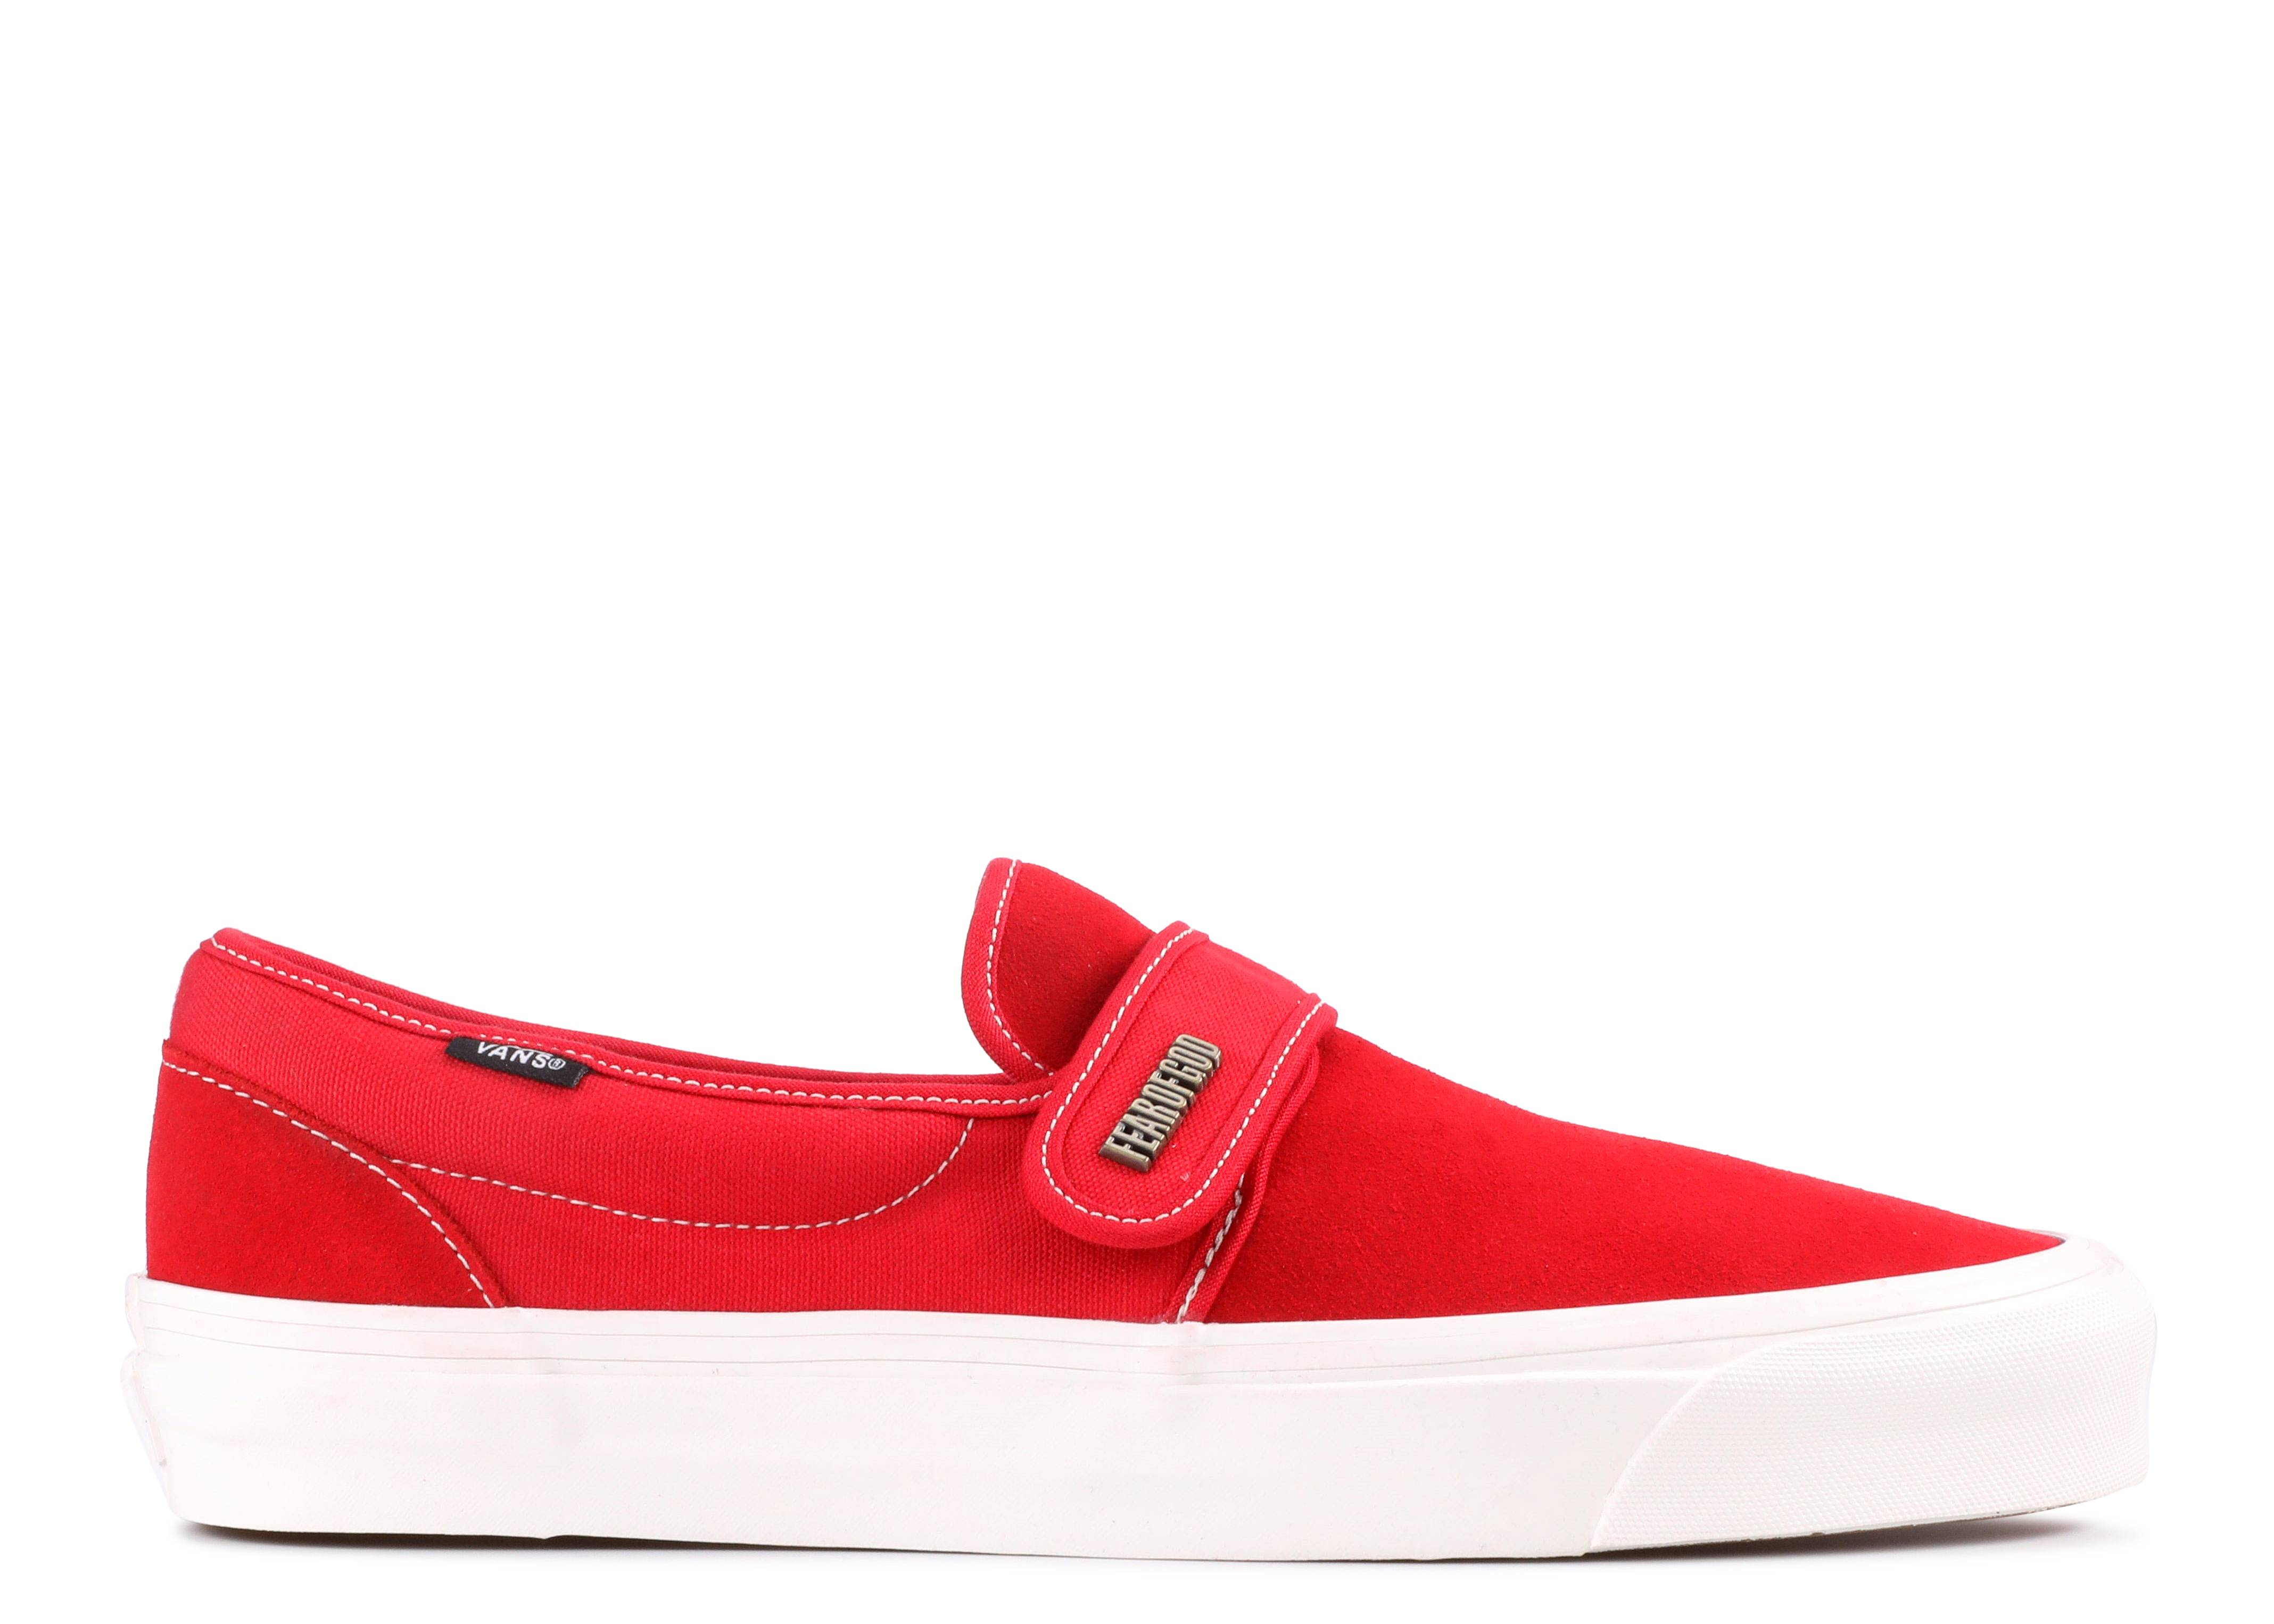 Vans x Fear Of God Slip On 47 Red Size US 11.5 EUR 45 UK 10.5